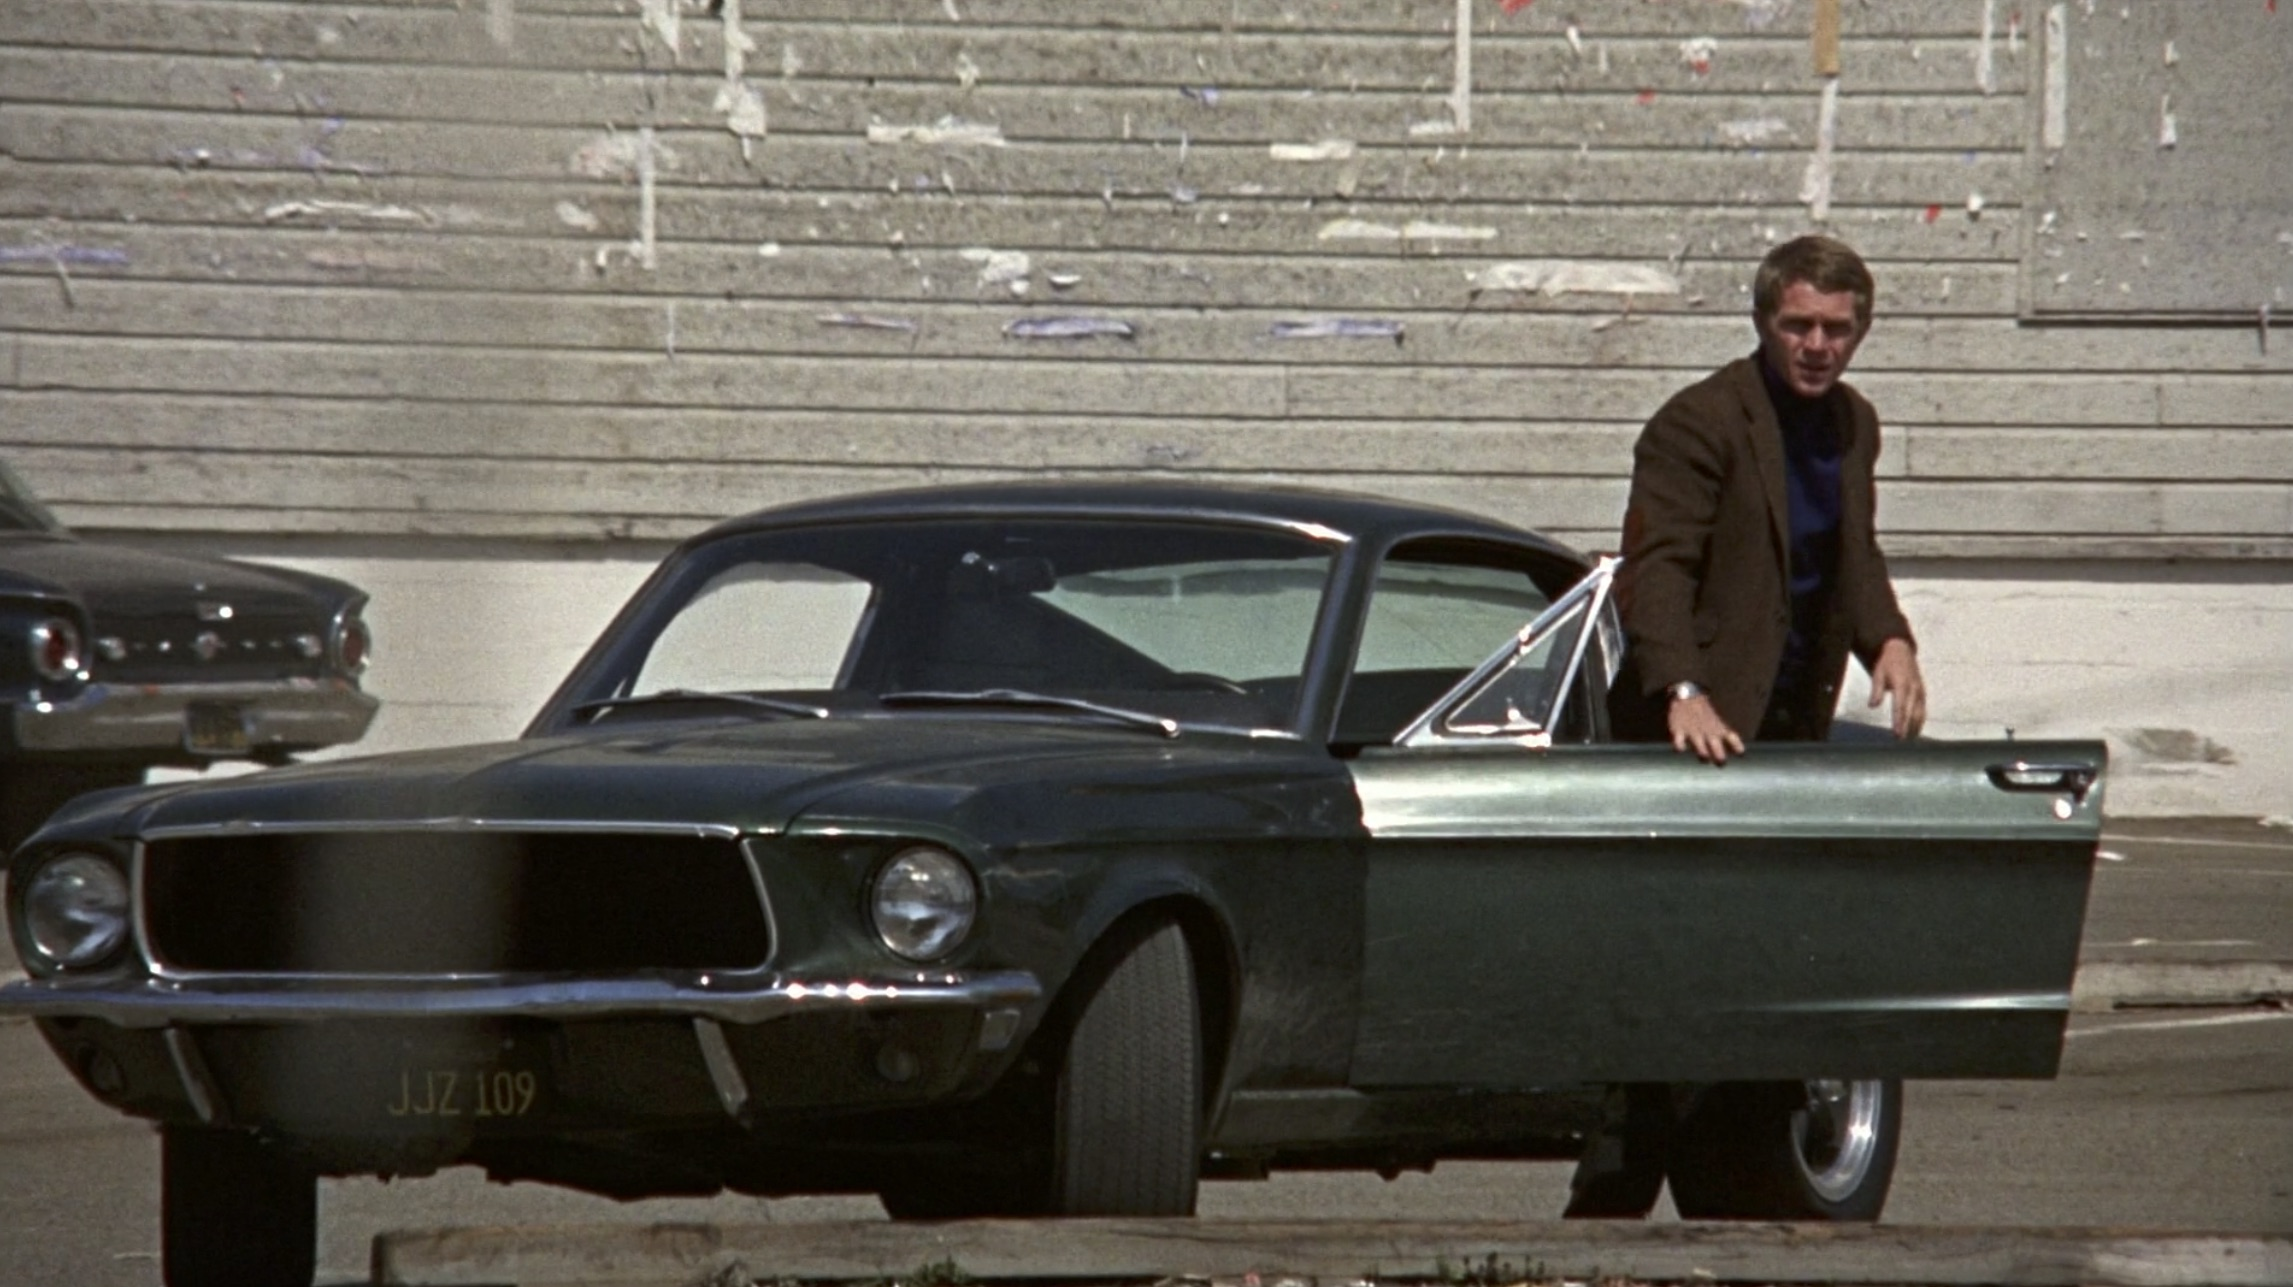 Steve McQueen with the Bullitt Mustang